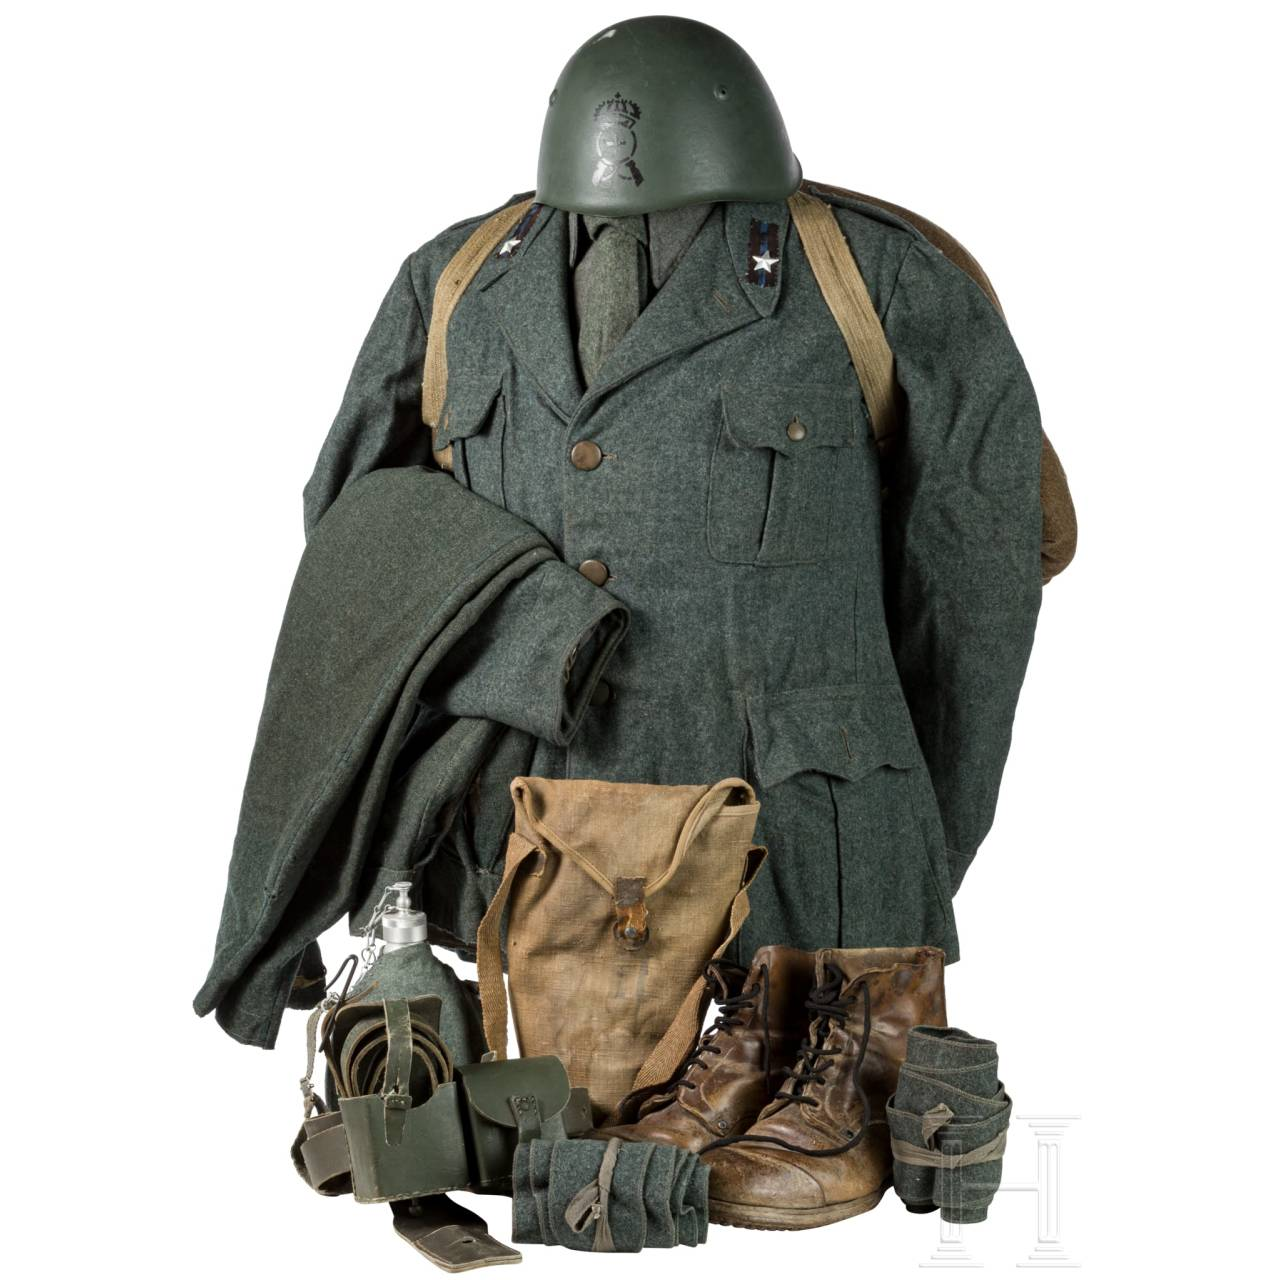 A uniform M 1940 for members of the infantry and equipment